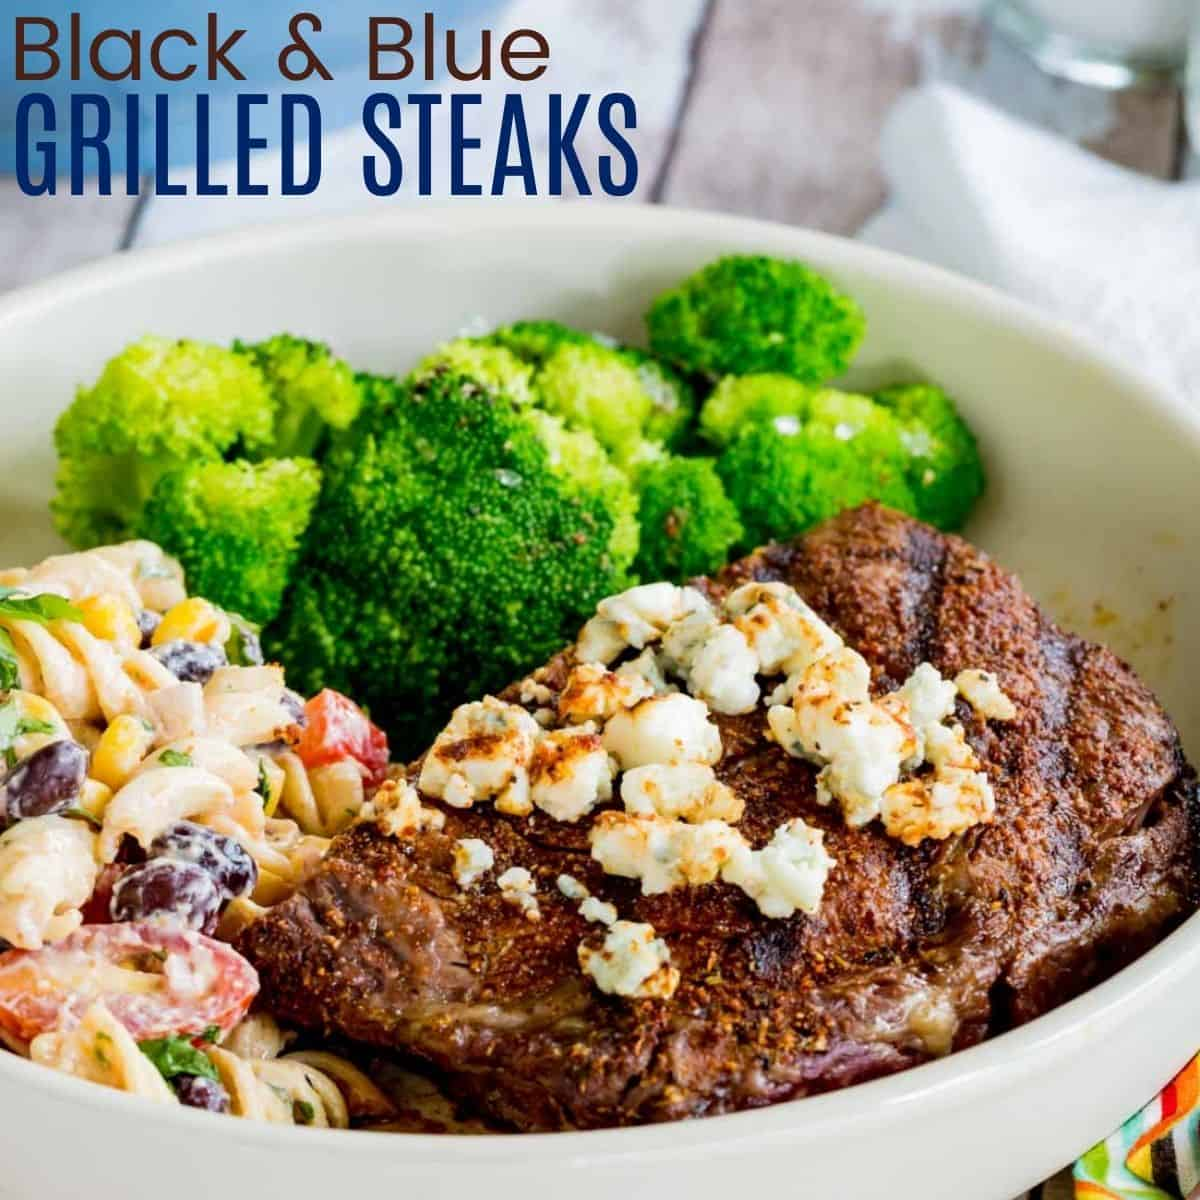 steak topped with blue cheese on a plate with potato salad and steamed broccoli